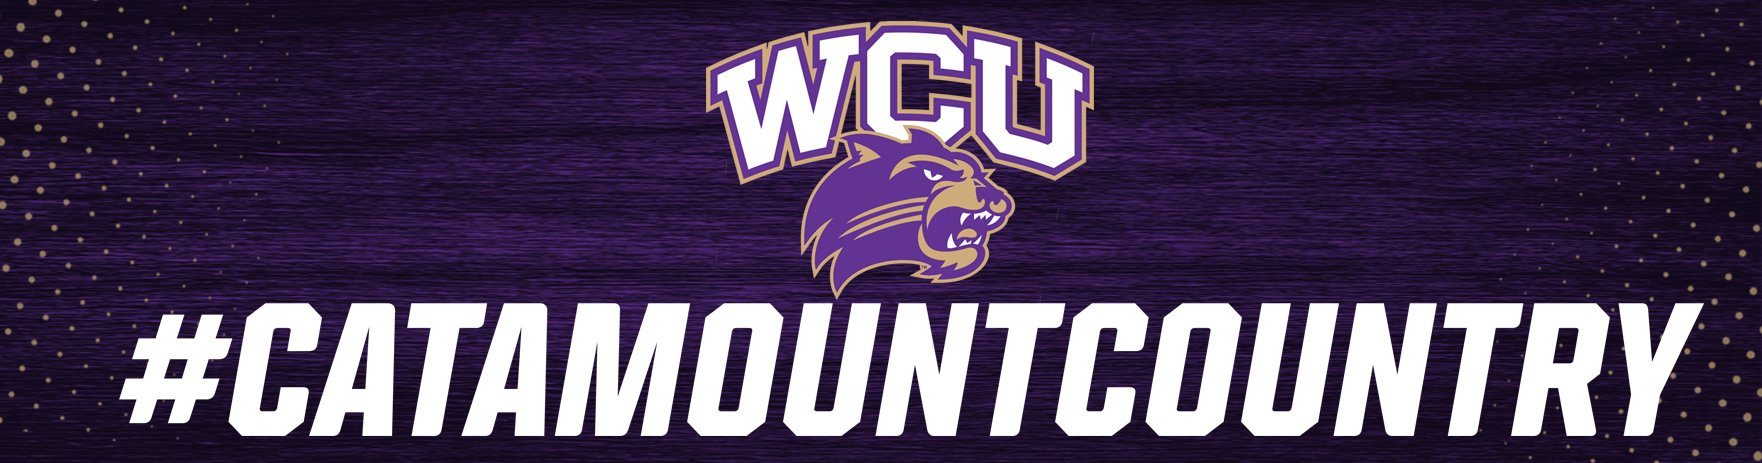 Catamount Country